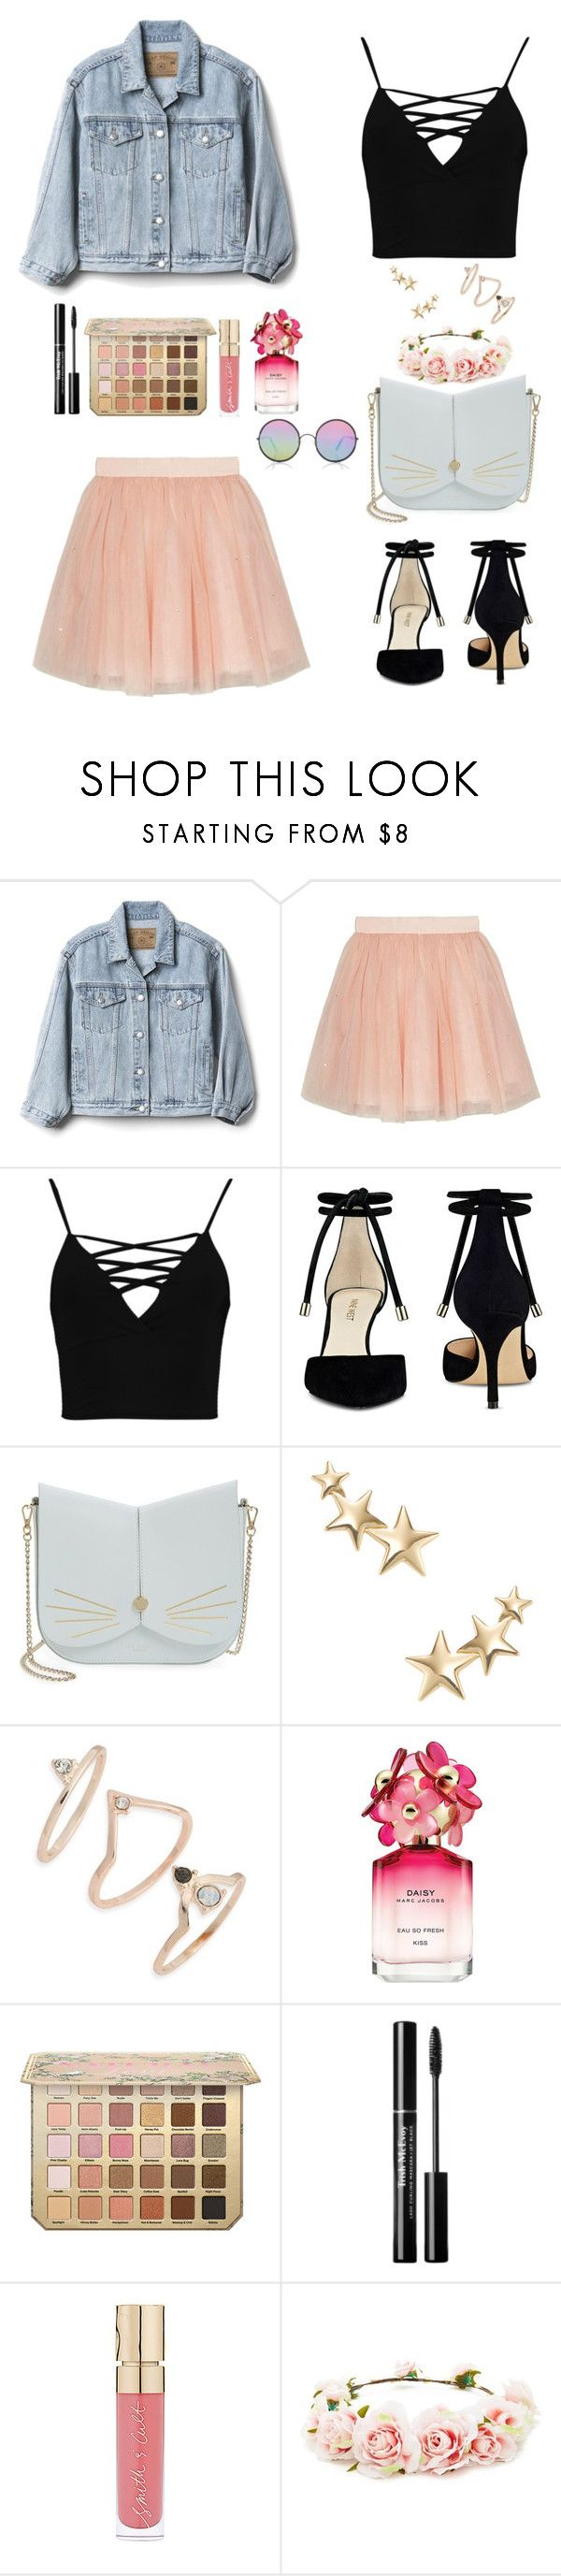 """Untitled #83"" by danistia ❤ liked on Polyvore featuring Gap, Ted Baker, Boohoo, Nine West, Kenneth Jay Lane, Topshop, Marc Jacobs, Smith & Cult, Forever 21 and Sunday Somewhere"